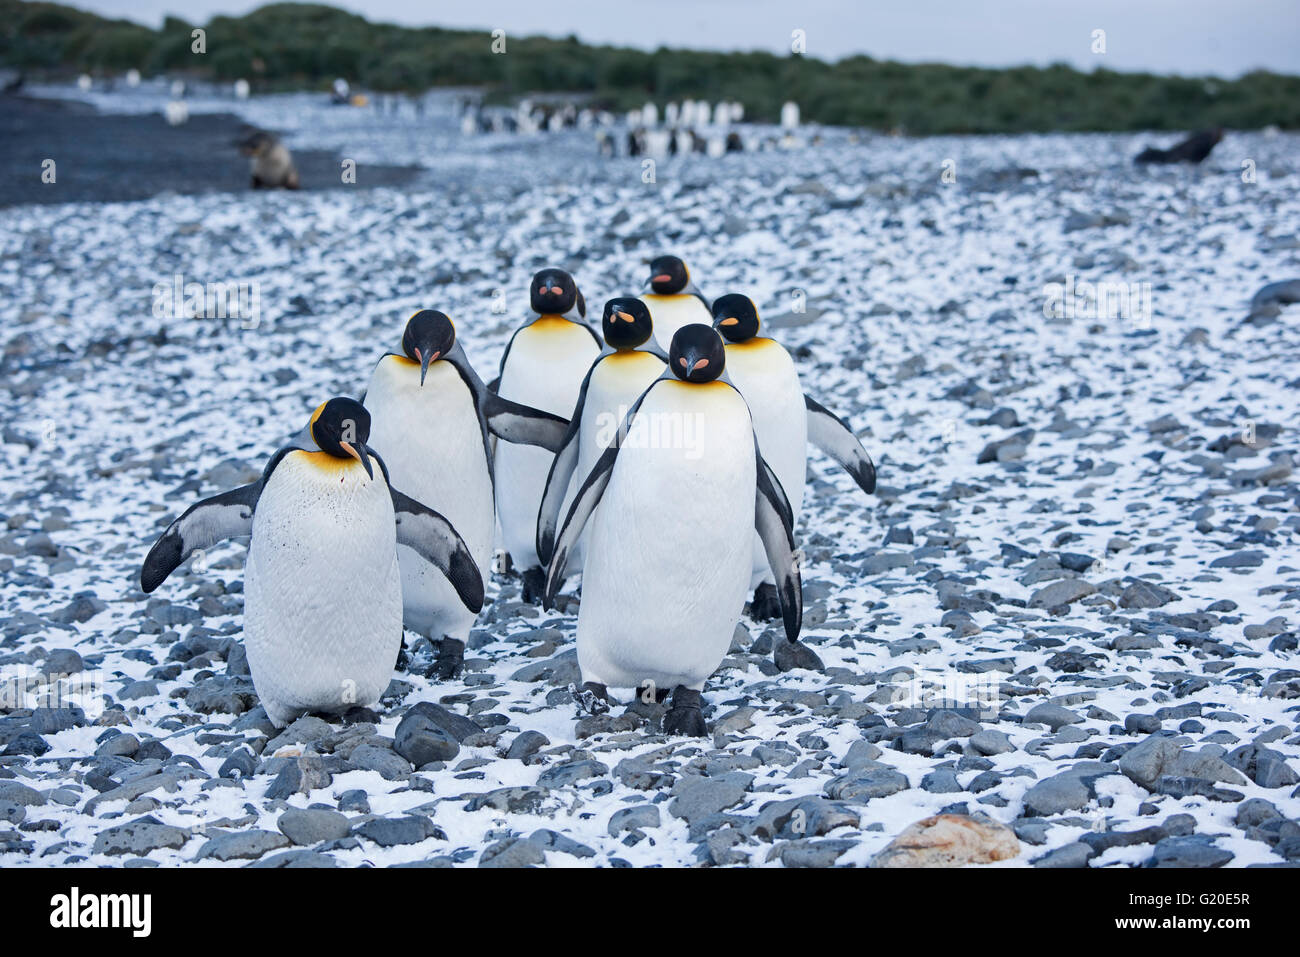 King Penguins Aptenodytes patagonicus Holmestrand South Georgia - Stock Image